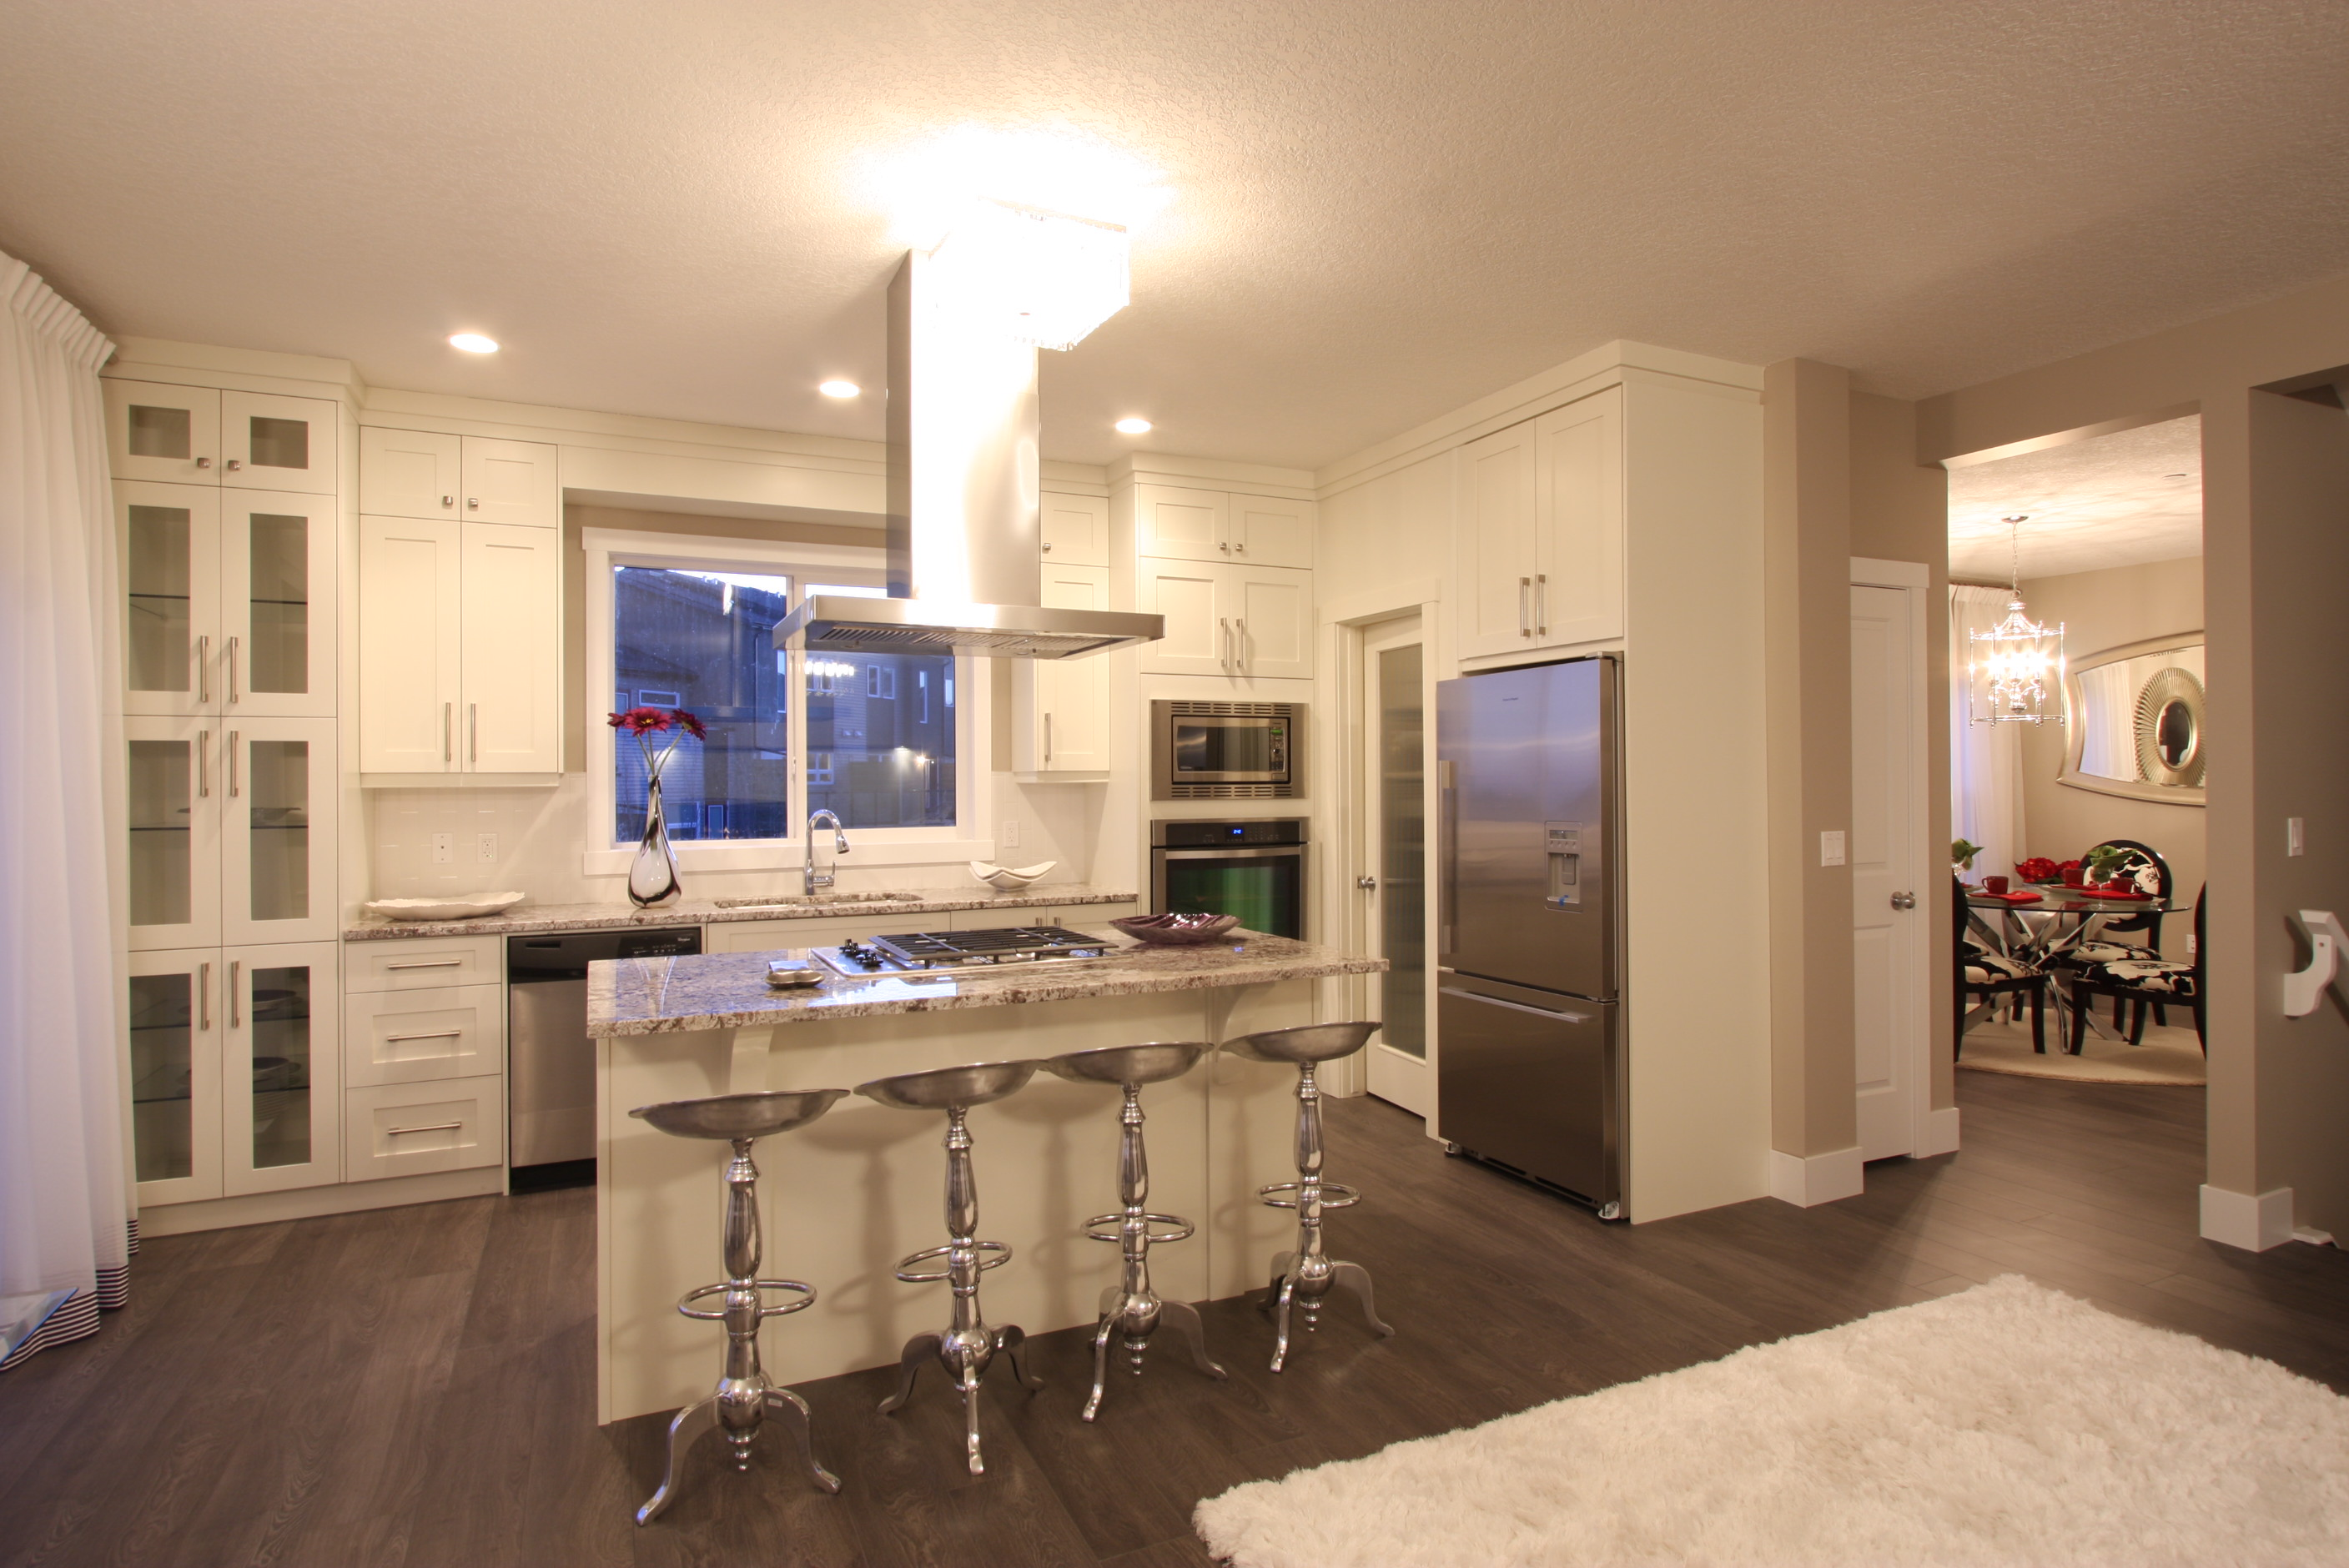 28 home and design expo calgary the kitchen and dining area home and design expo calgary cove of coventry calgary homes 1 buzzbuzzhome news